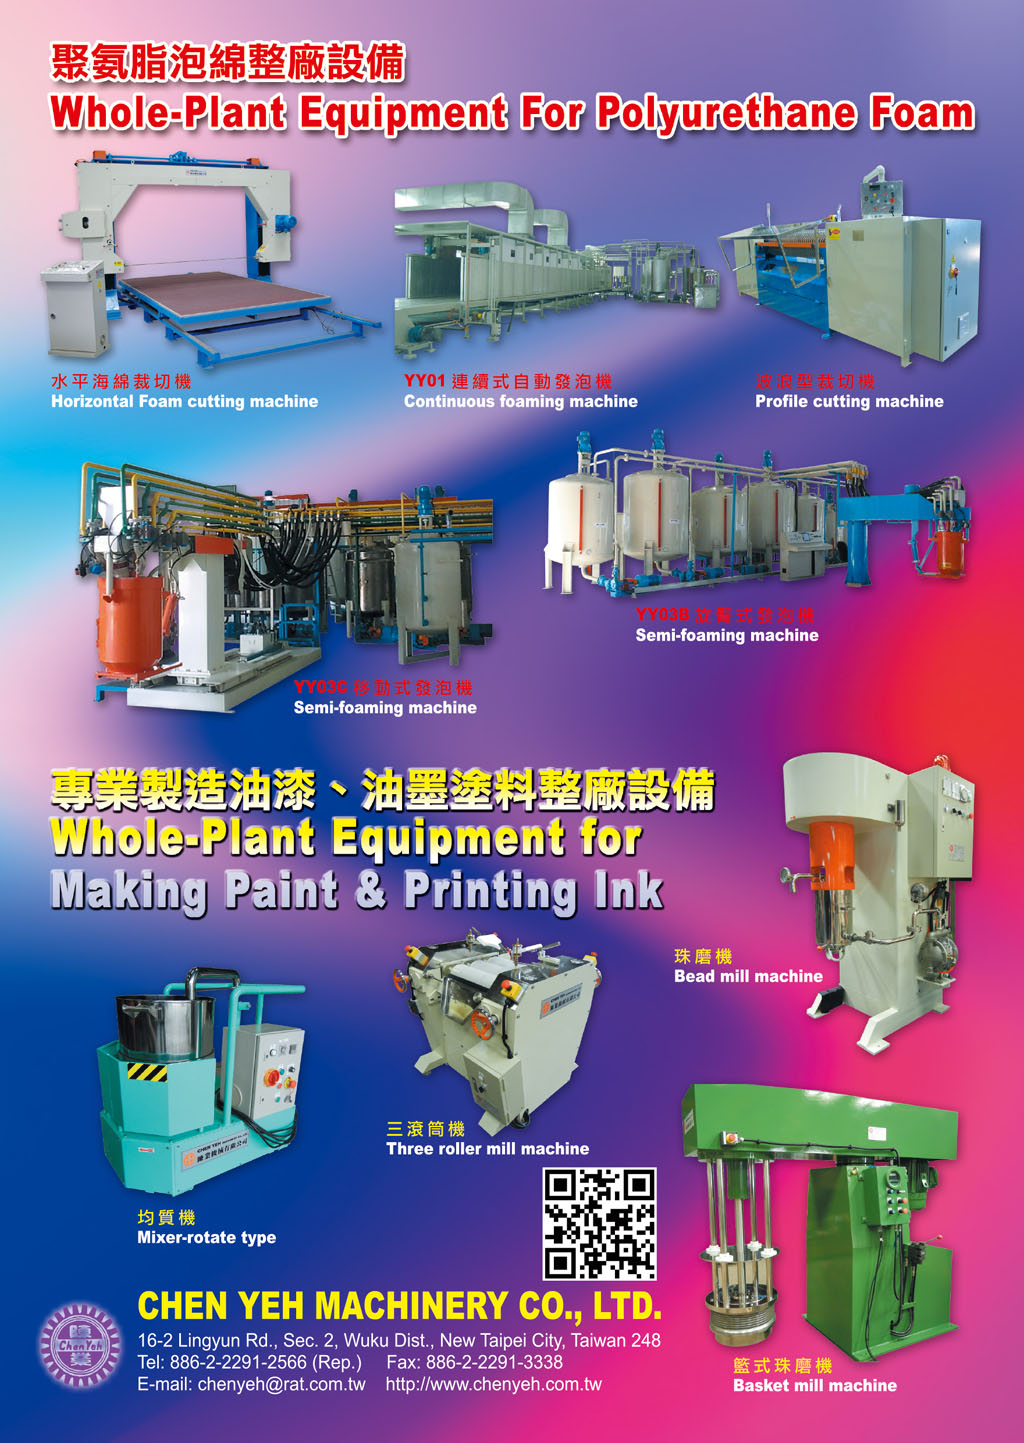 Taiwan Machinery CHEN YEH MACHINERY CO., LTD.